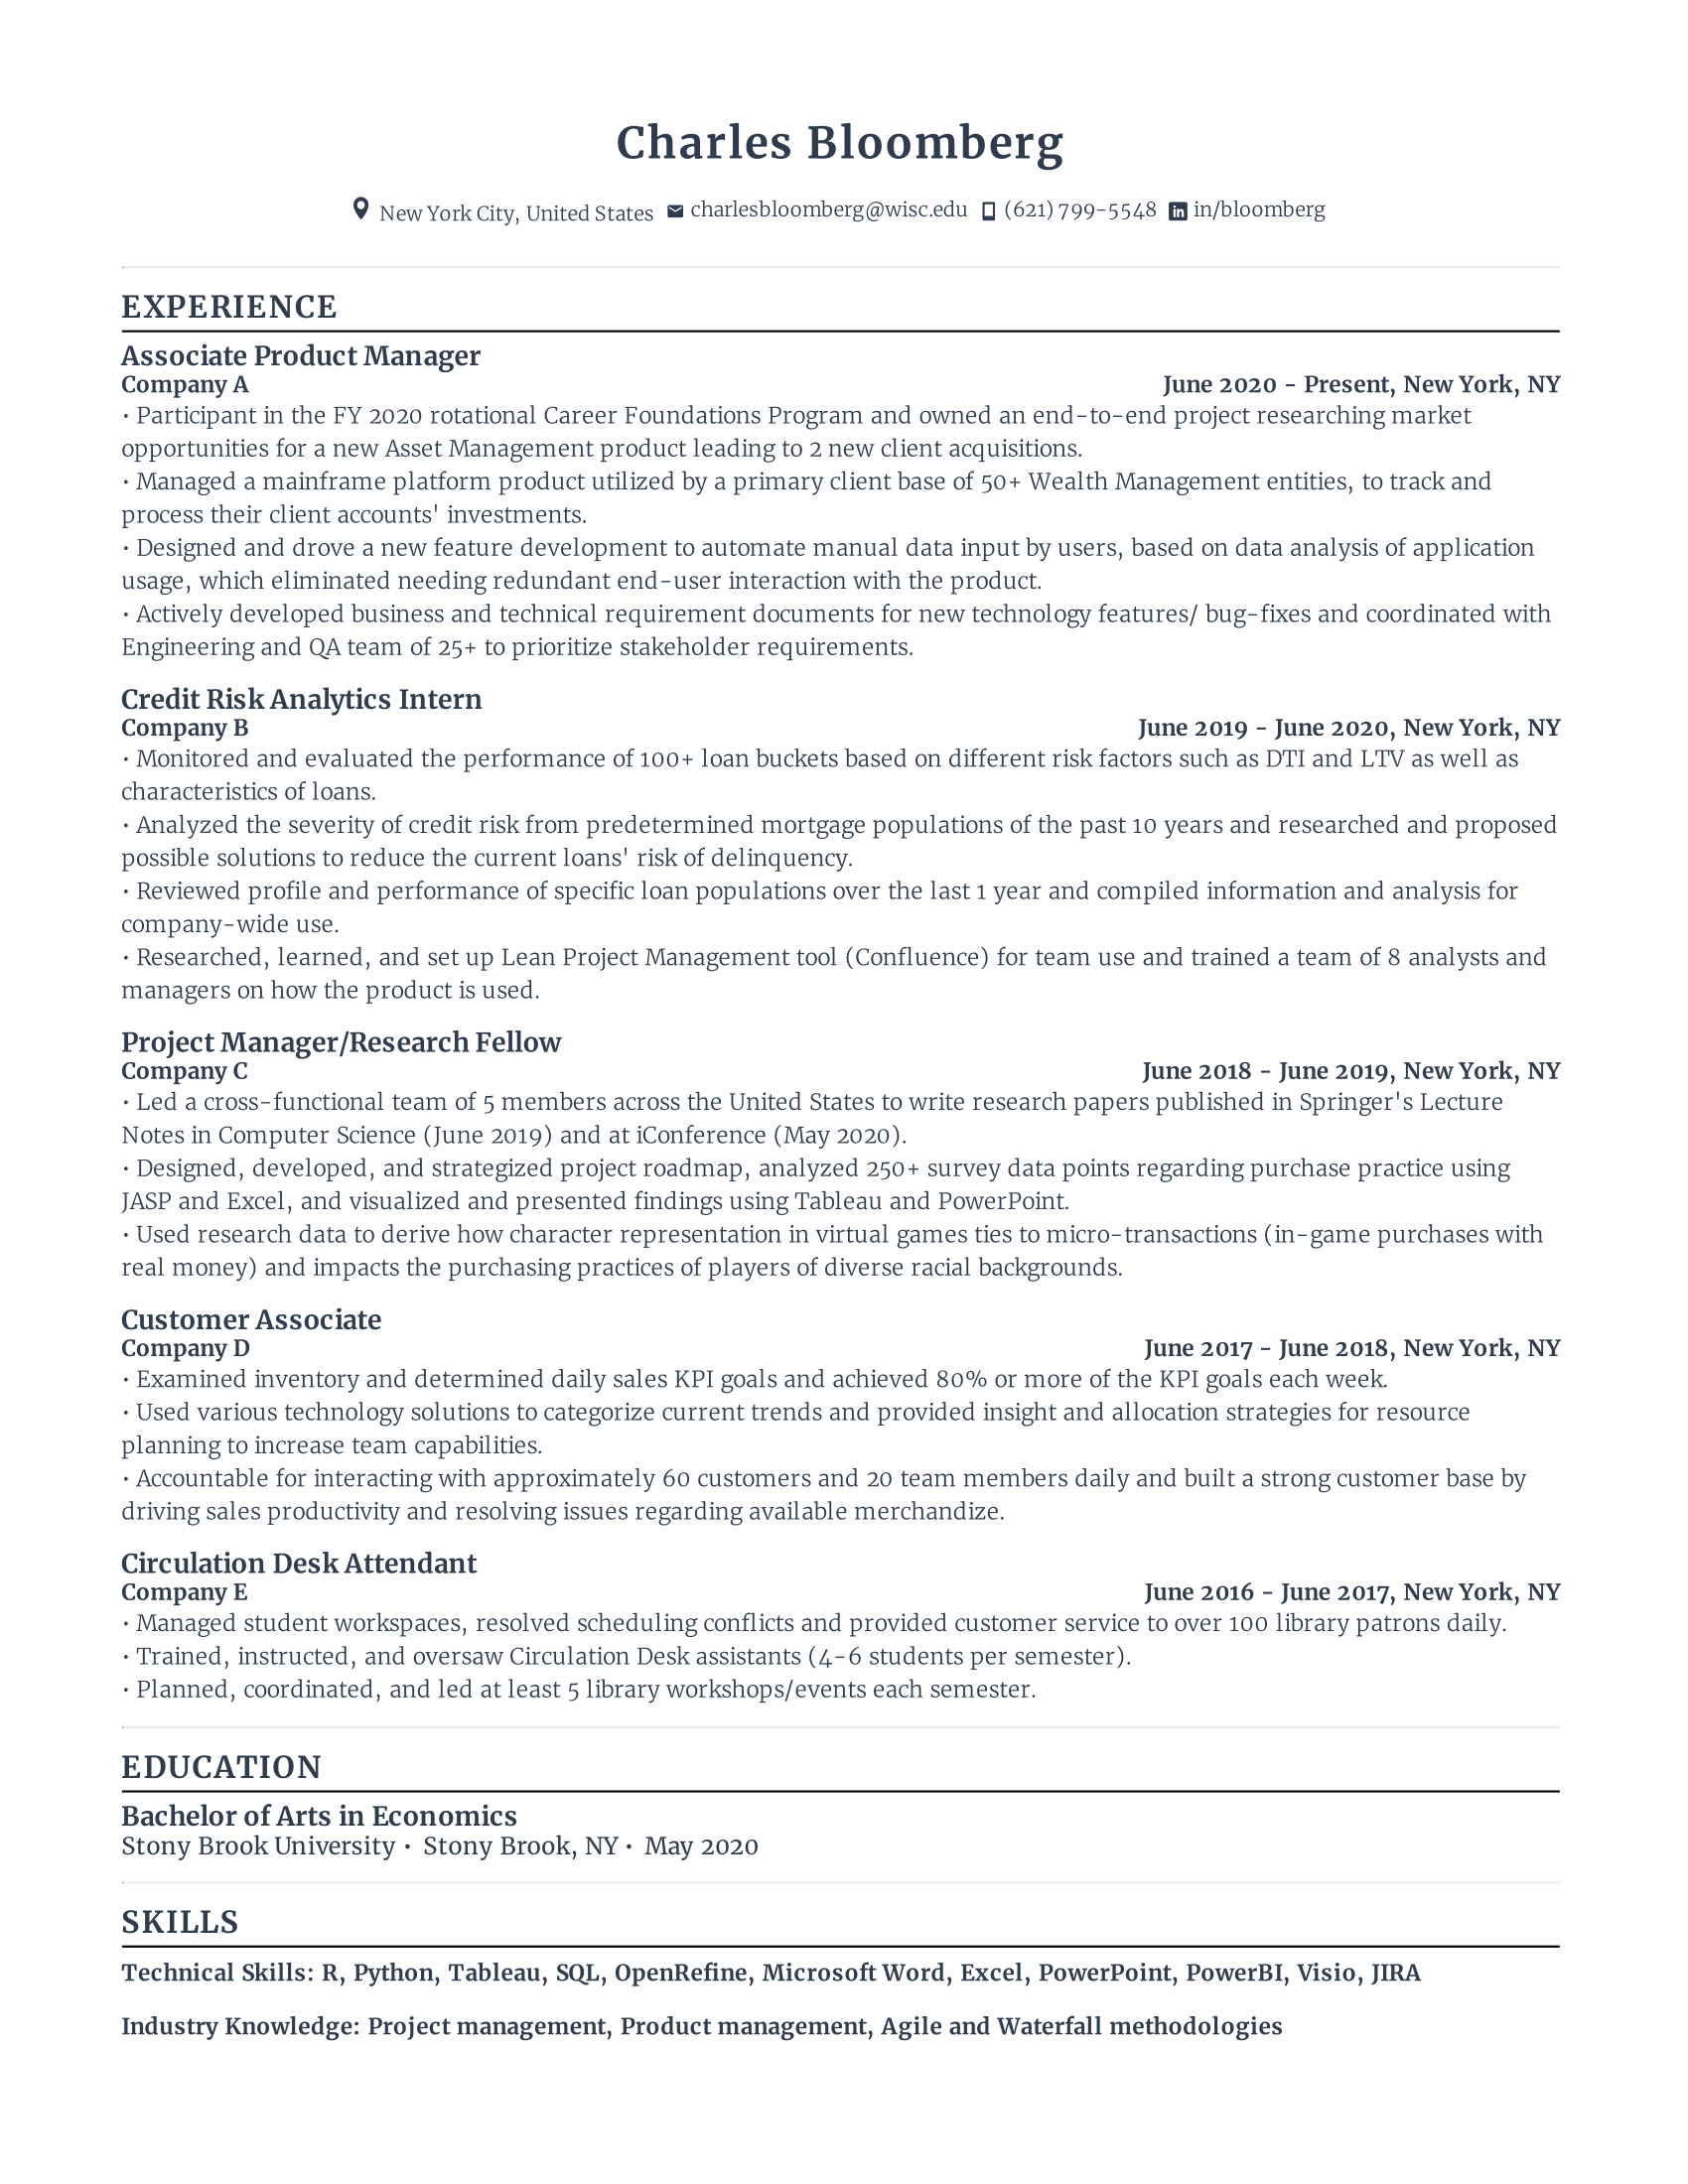 Associate Product Manager Resume